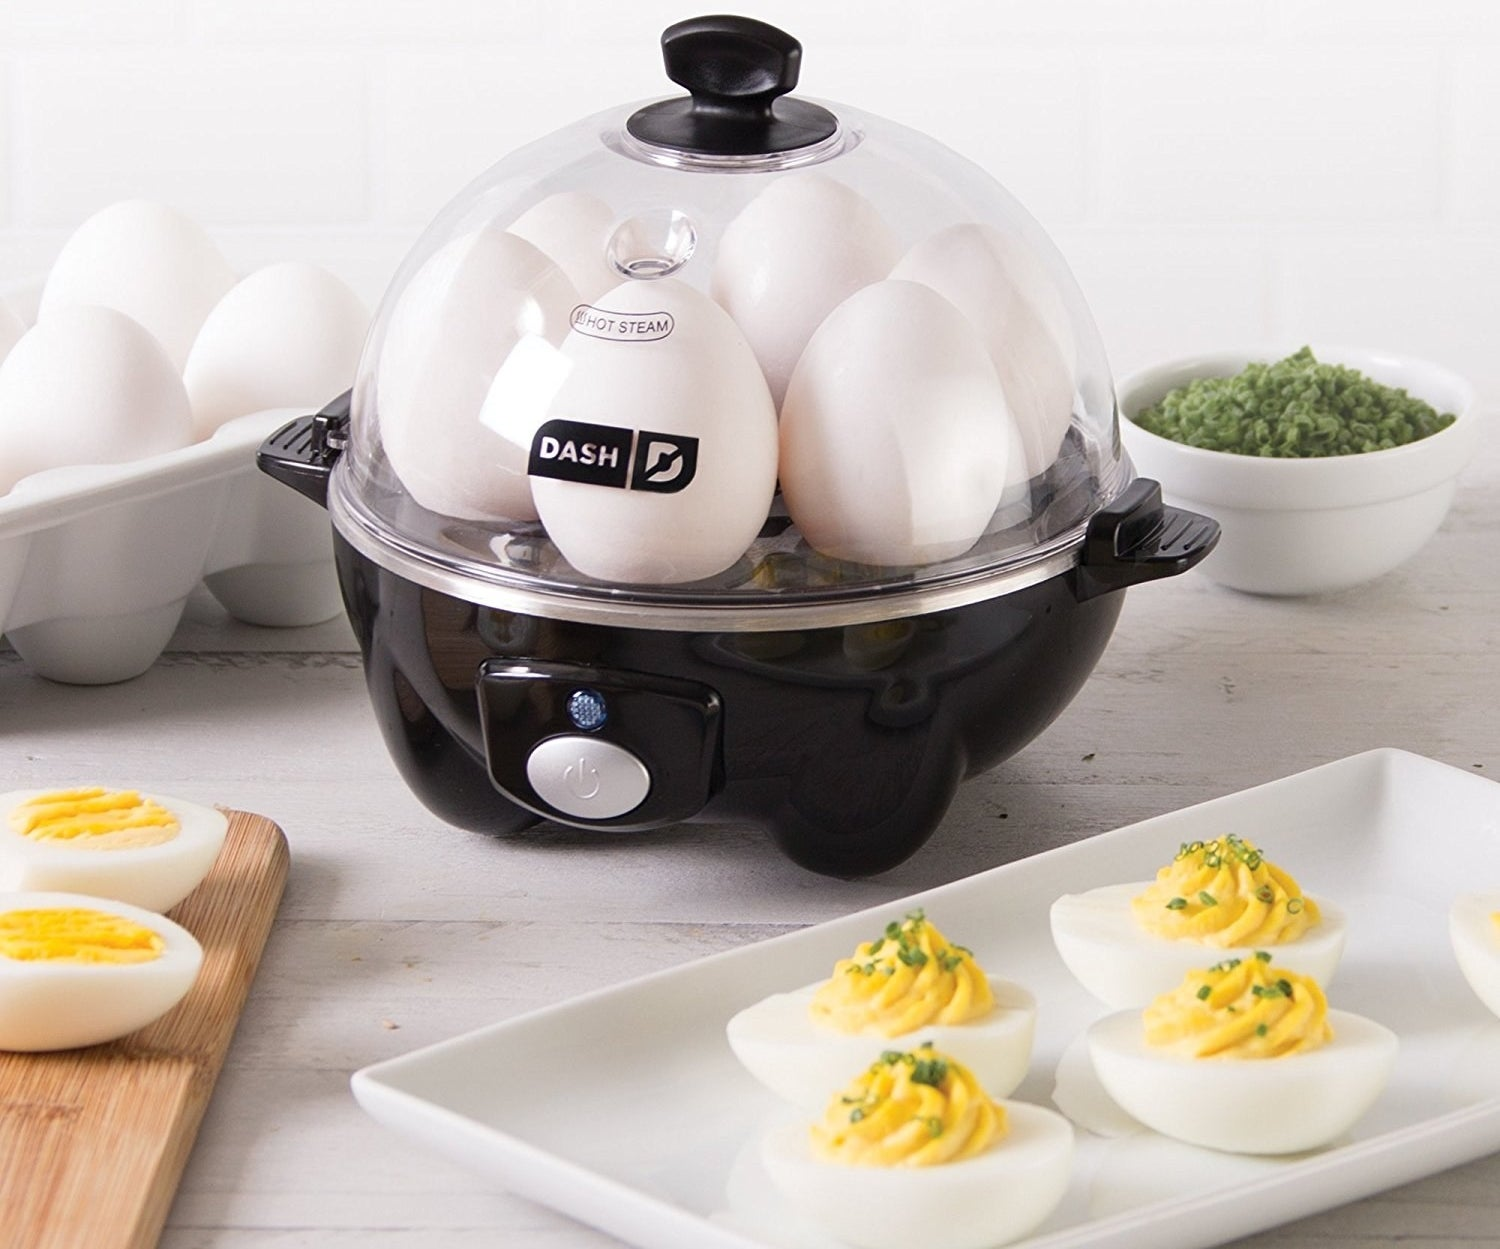 The egg cooker with six eggs in it, plus a plate of deviled eggs